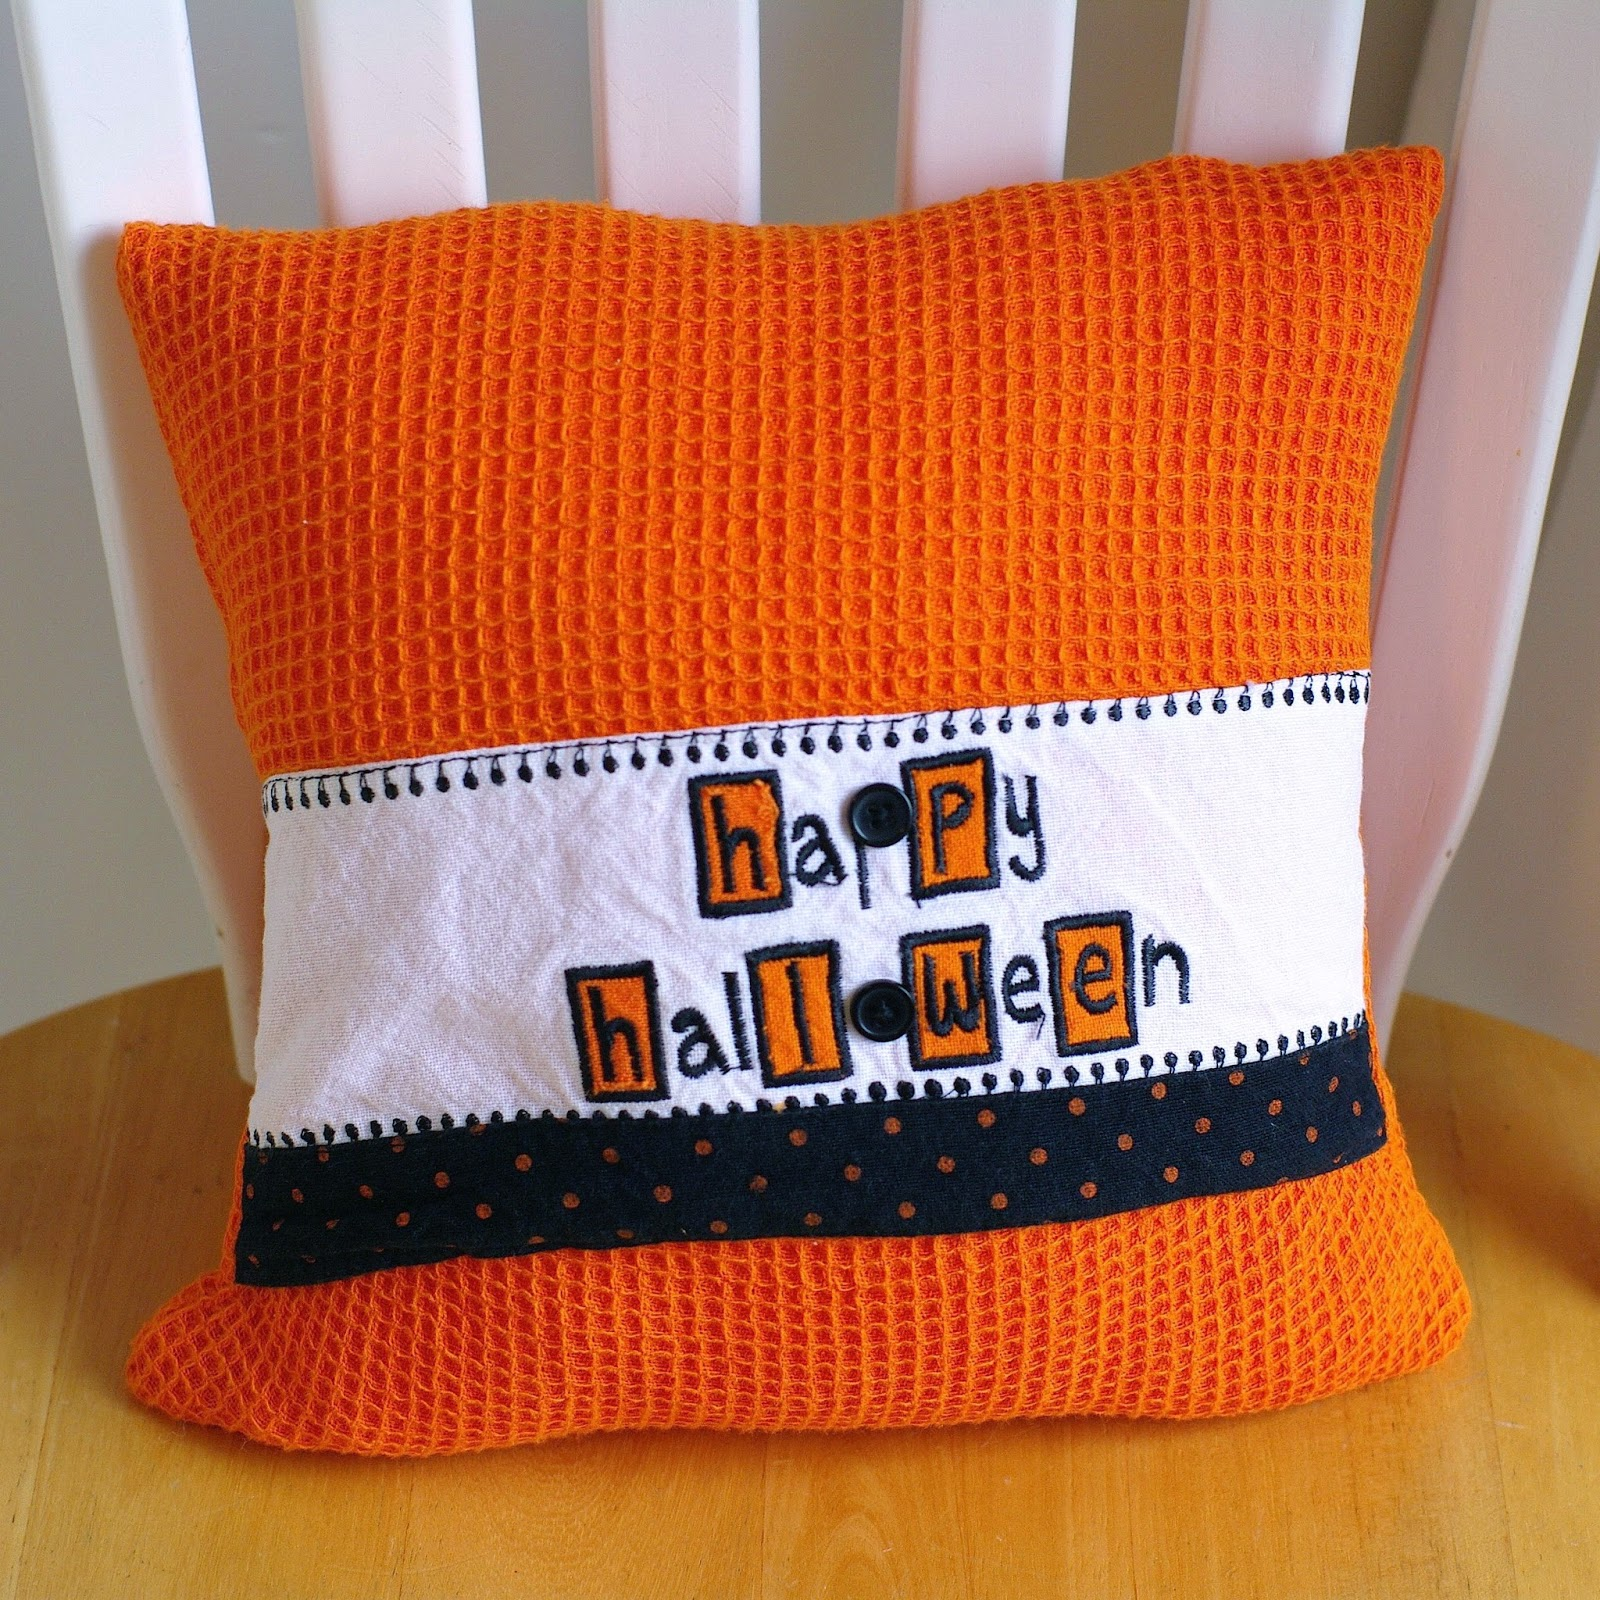 Sew Sweet Vintage: doily pillow, pocket pillow covers